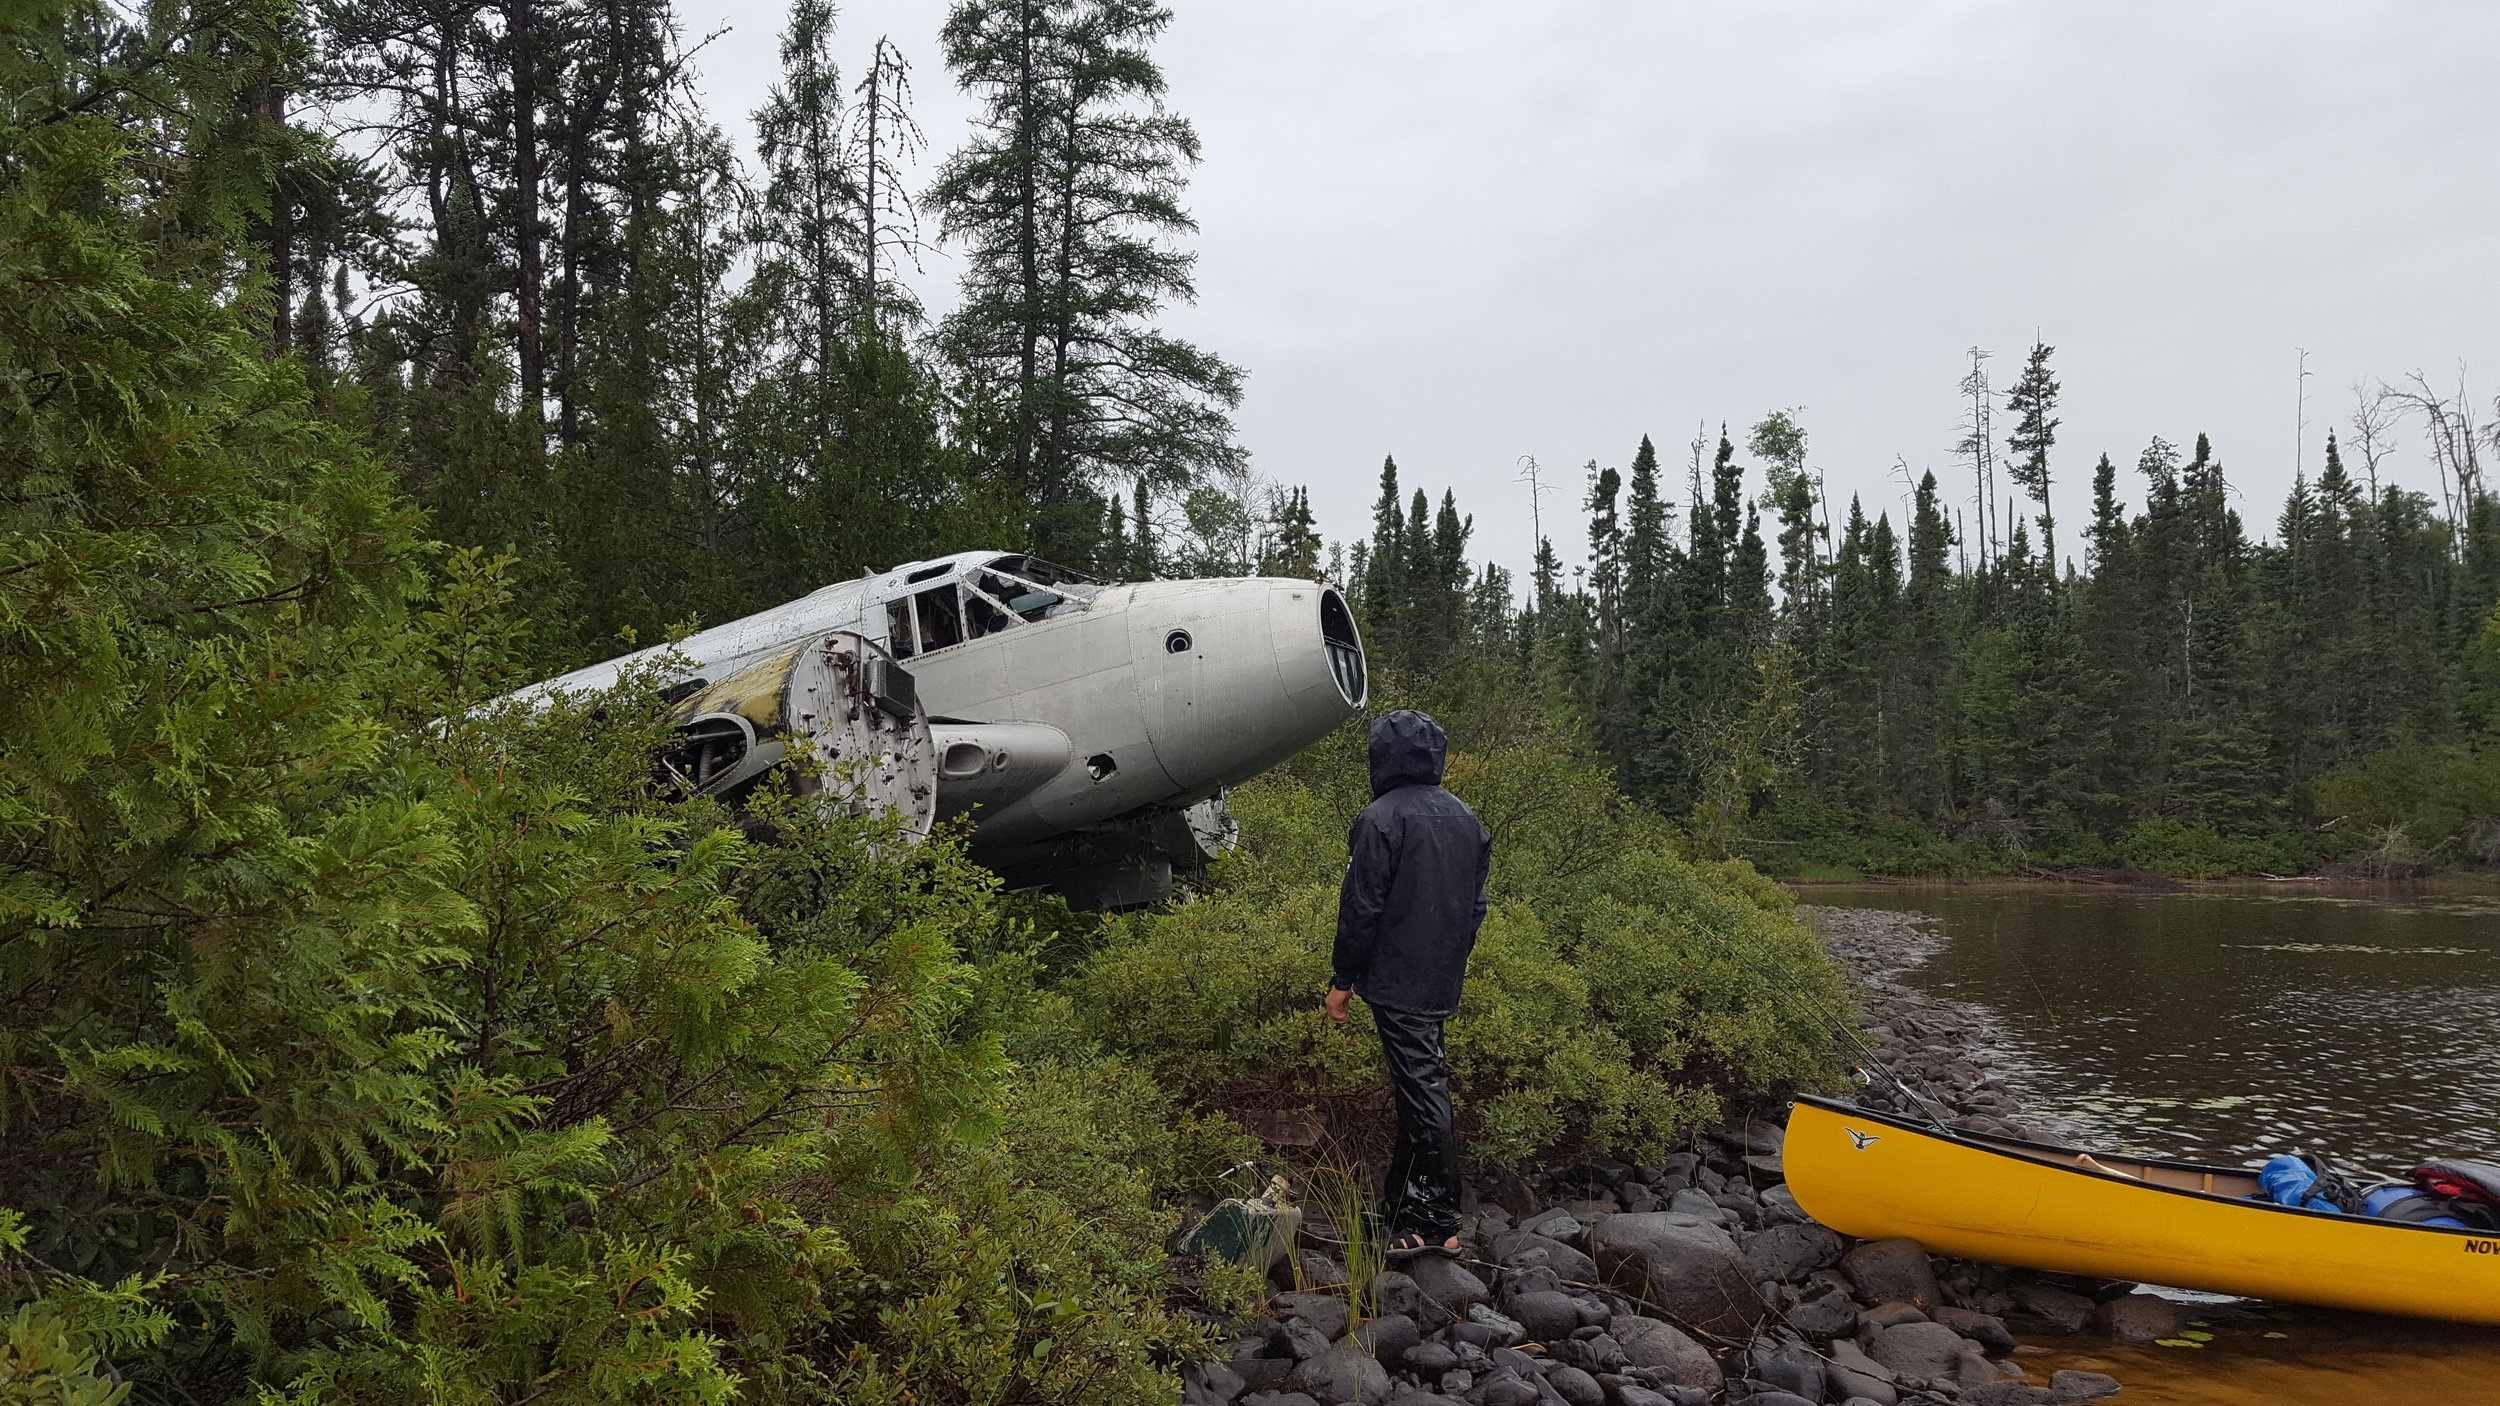 Old Plane Crash on Wash Lake